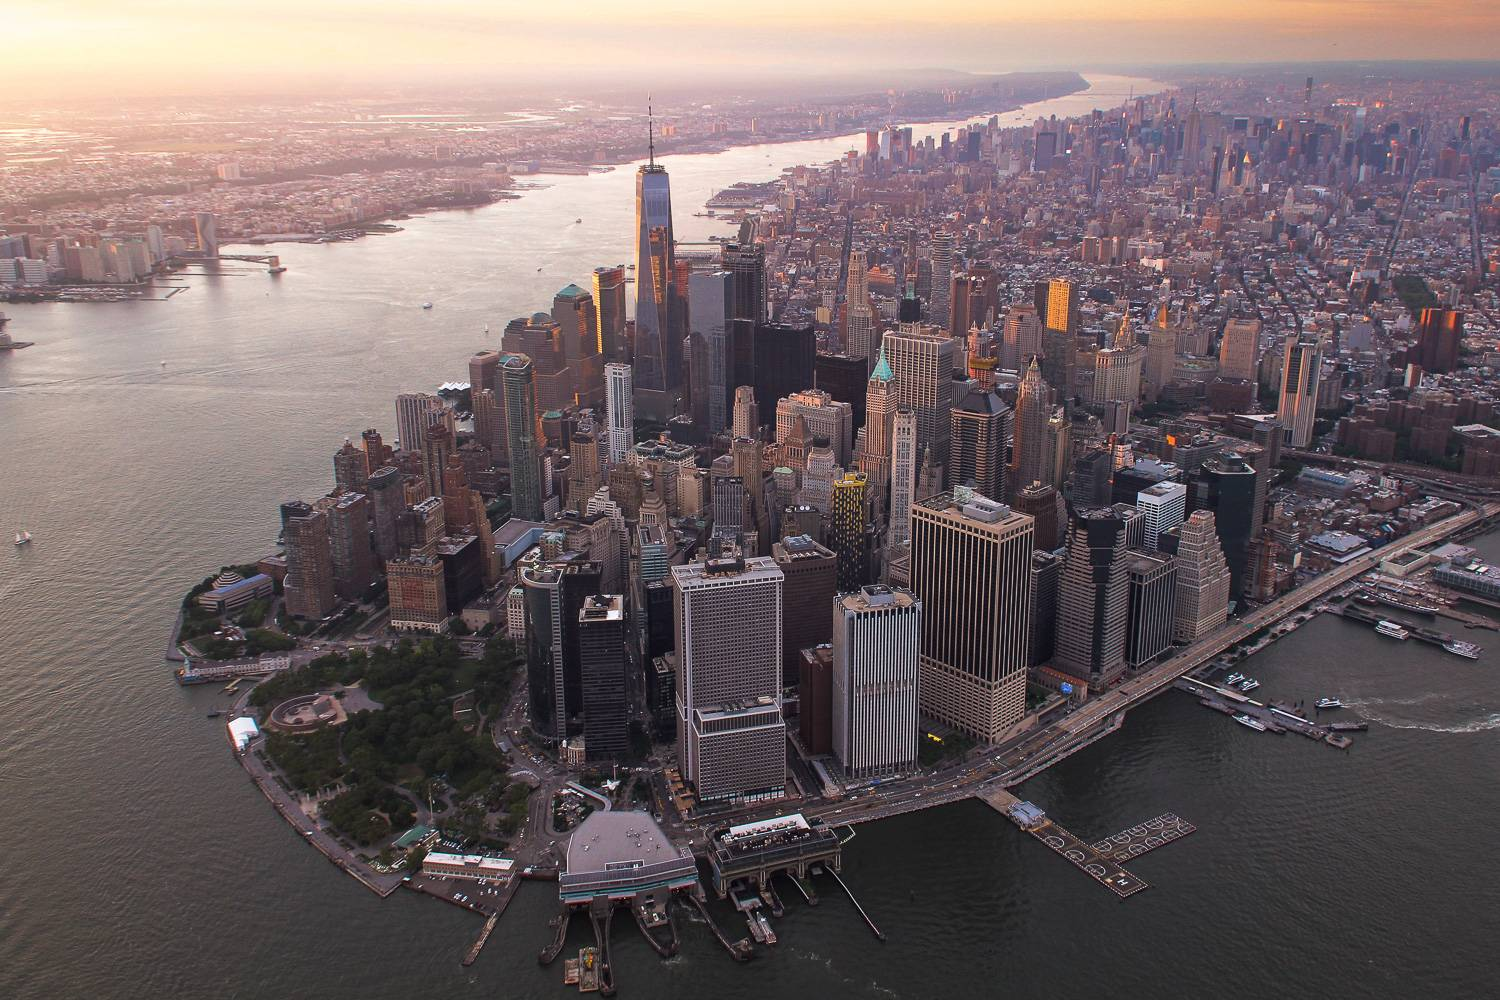 Image of the Financial District and Lower Manhattan from above at dusk.